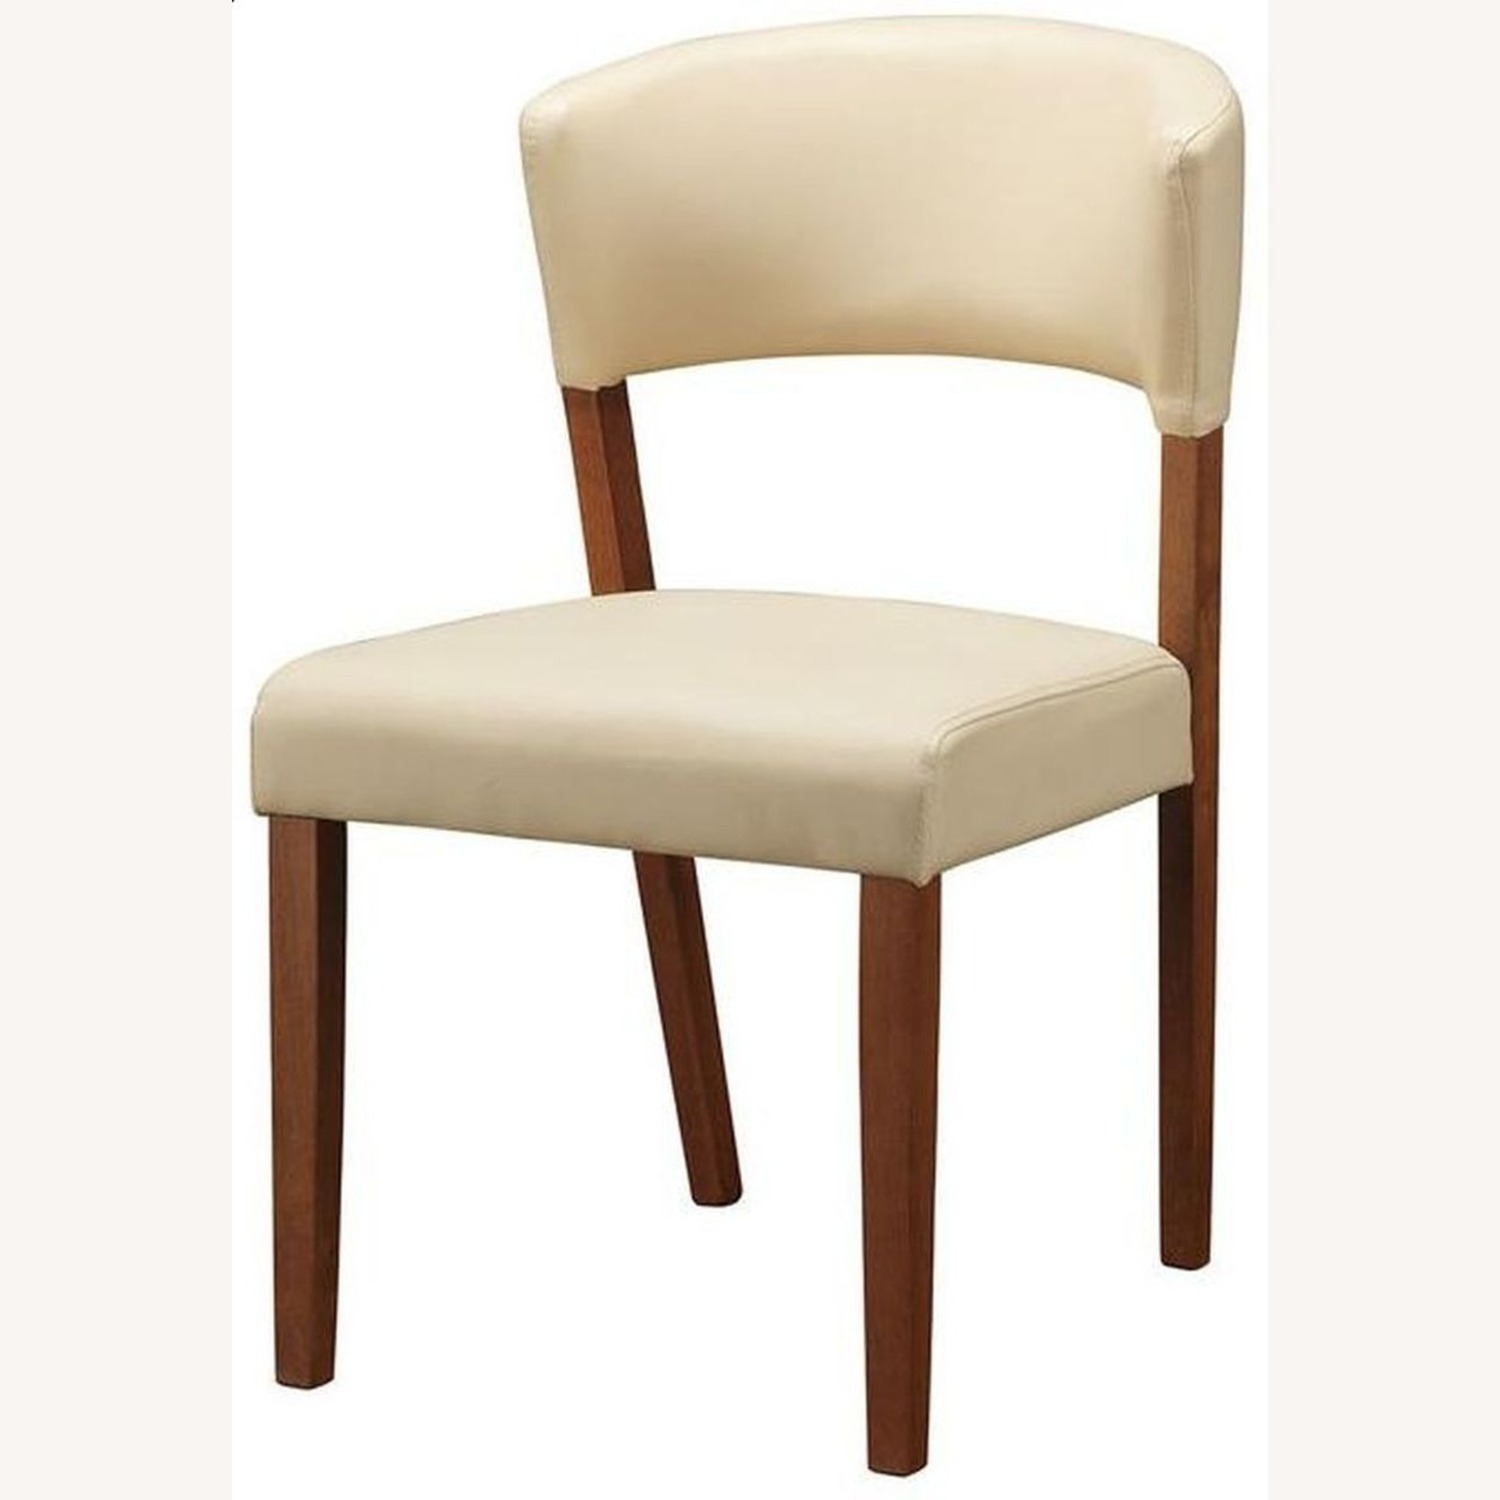 Retro Side Chair In Nutmeg & Cream Leatherette - image-1